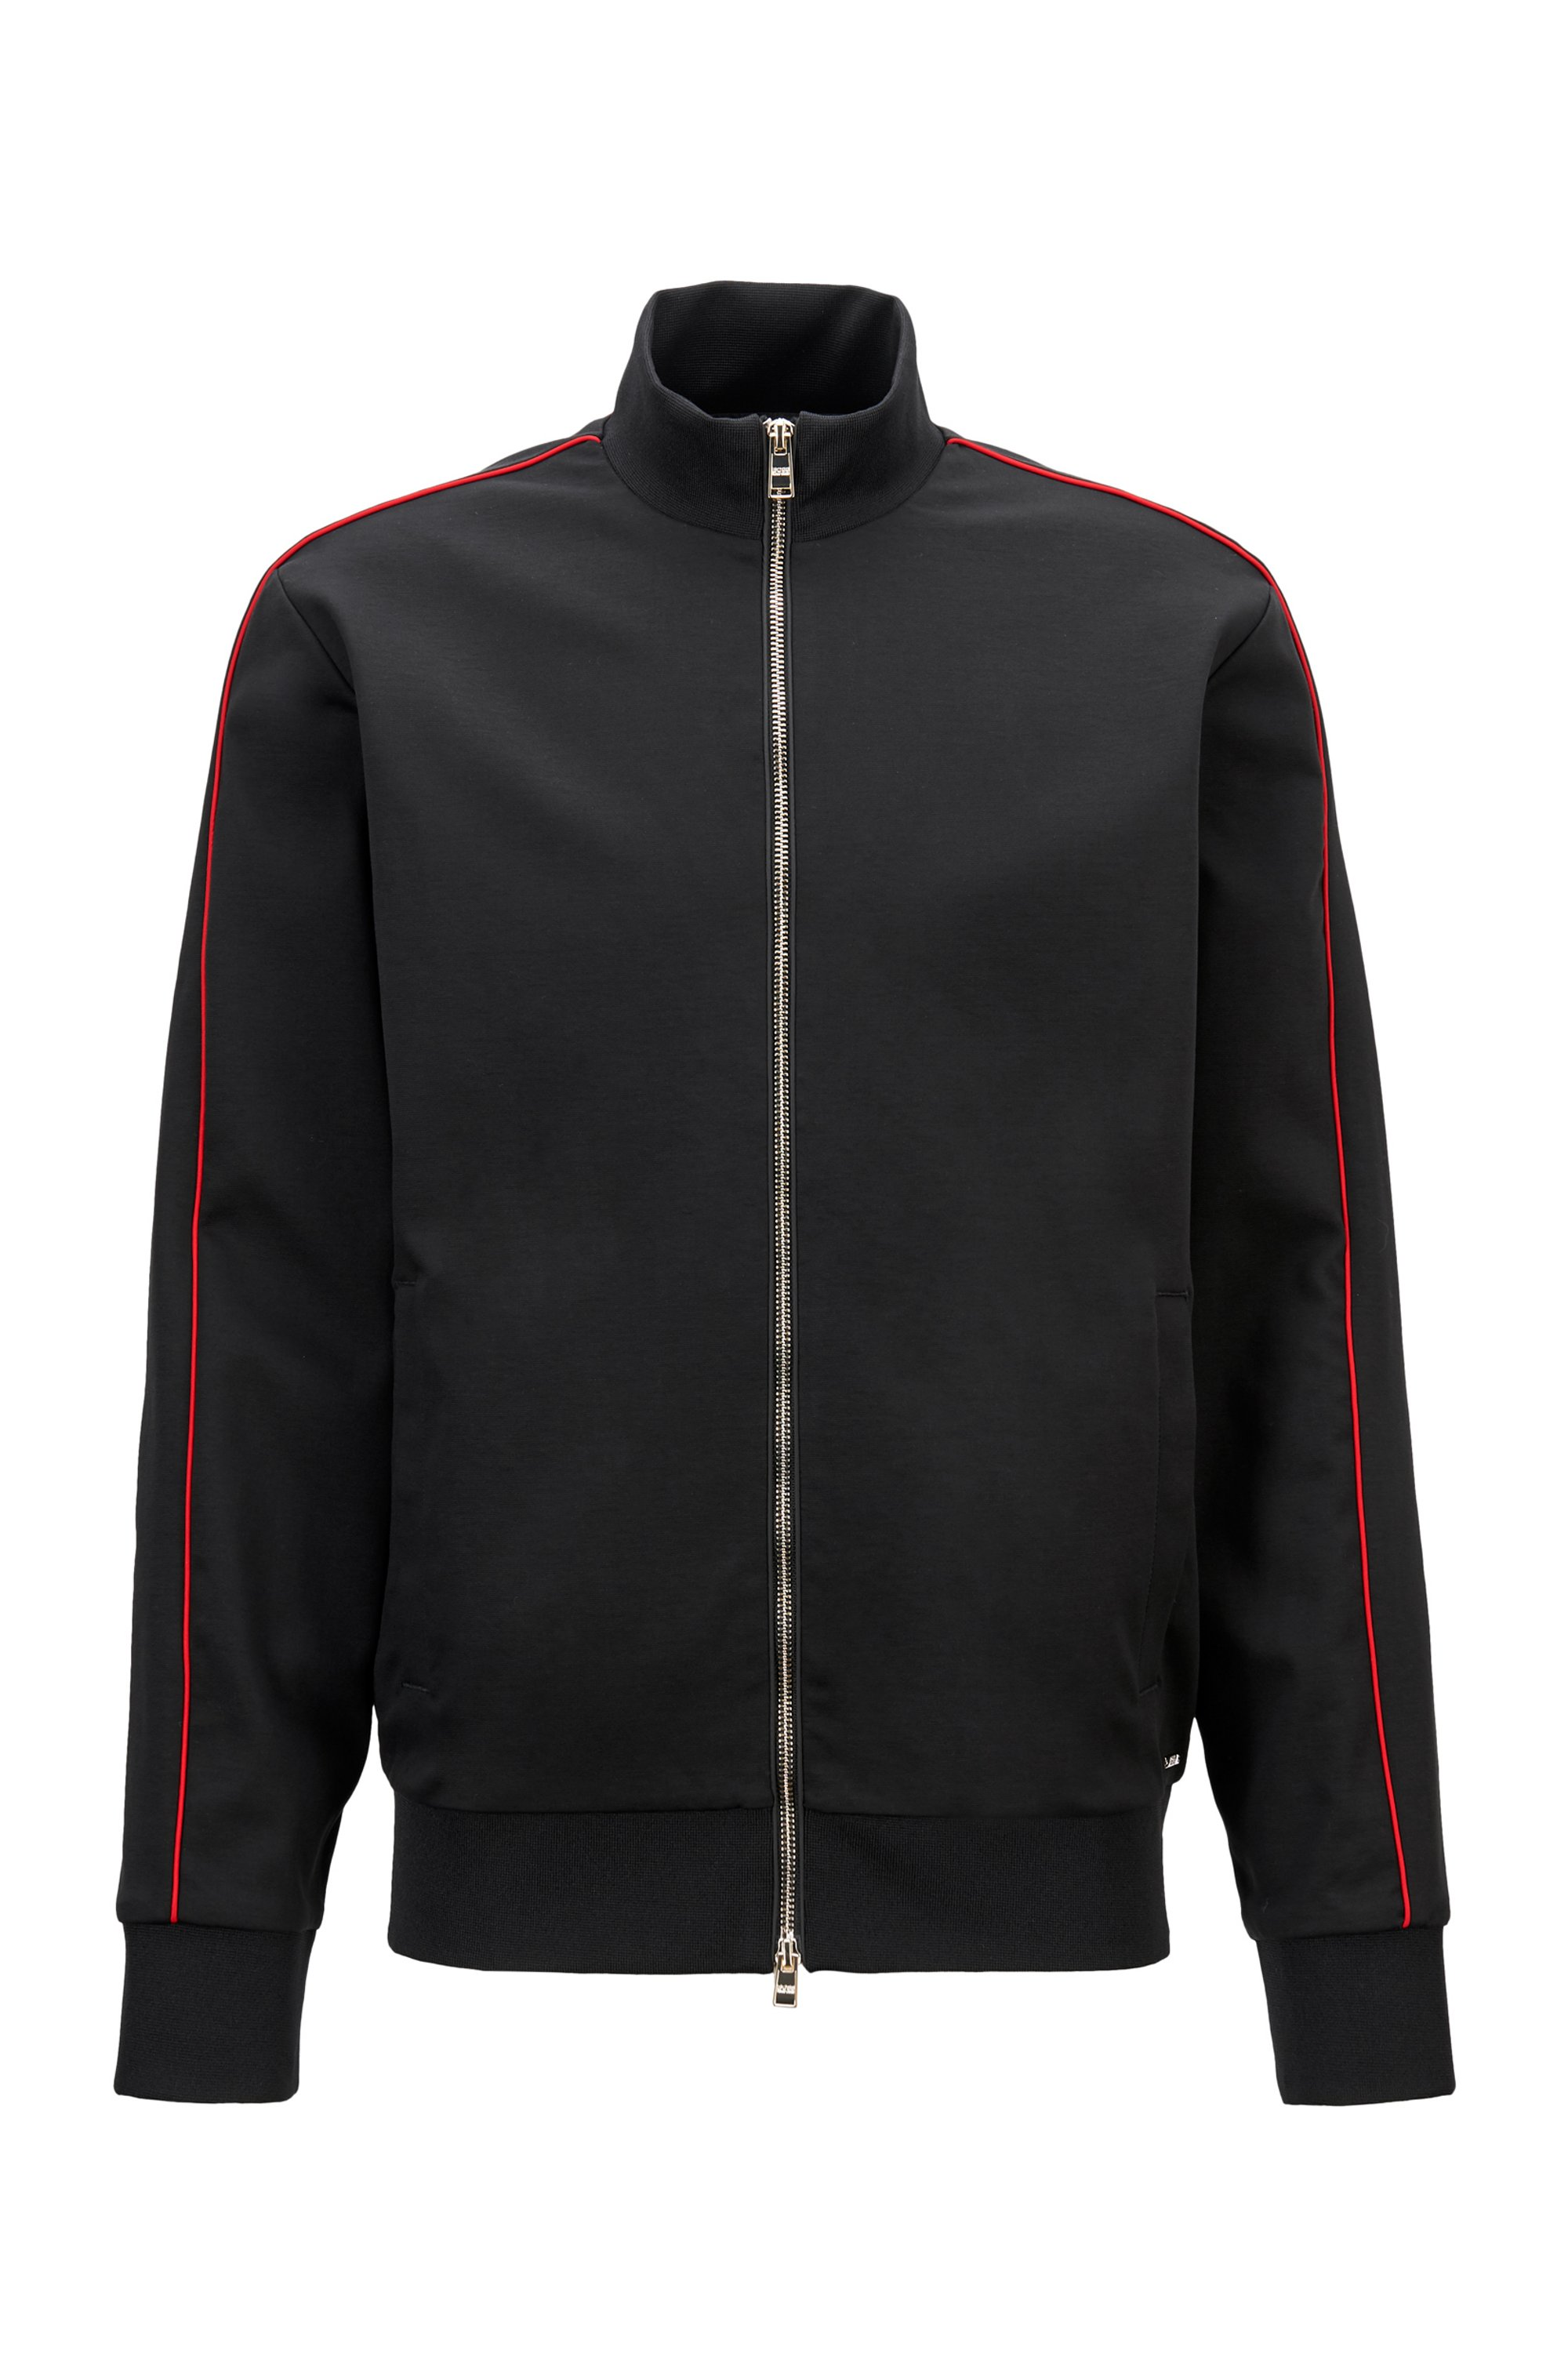 Cotton-blend zip-through sweatshirt with red piping, Black